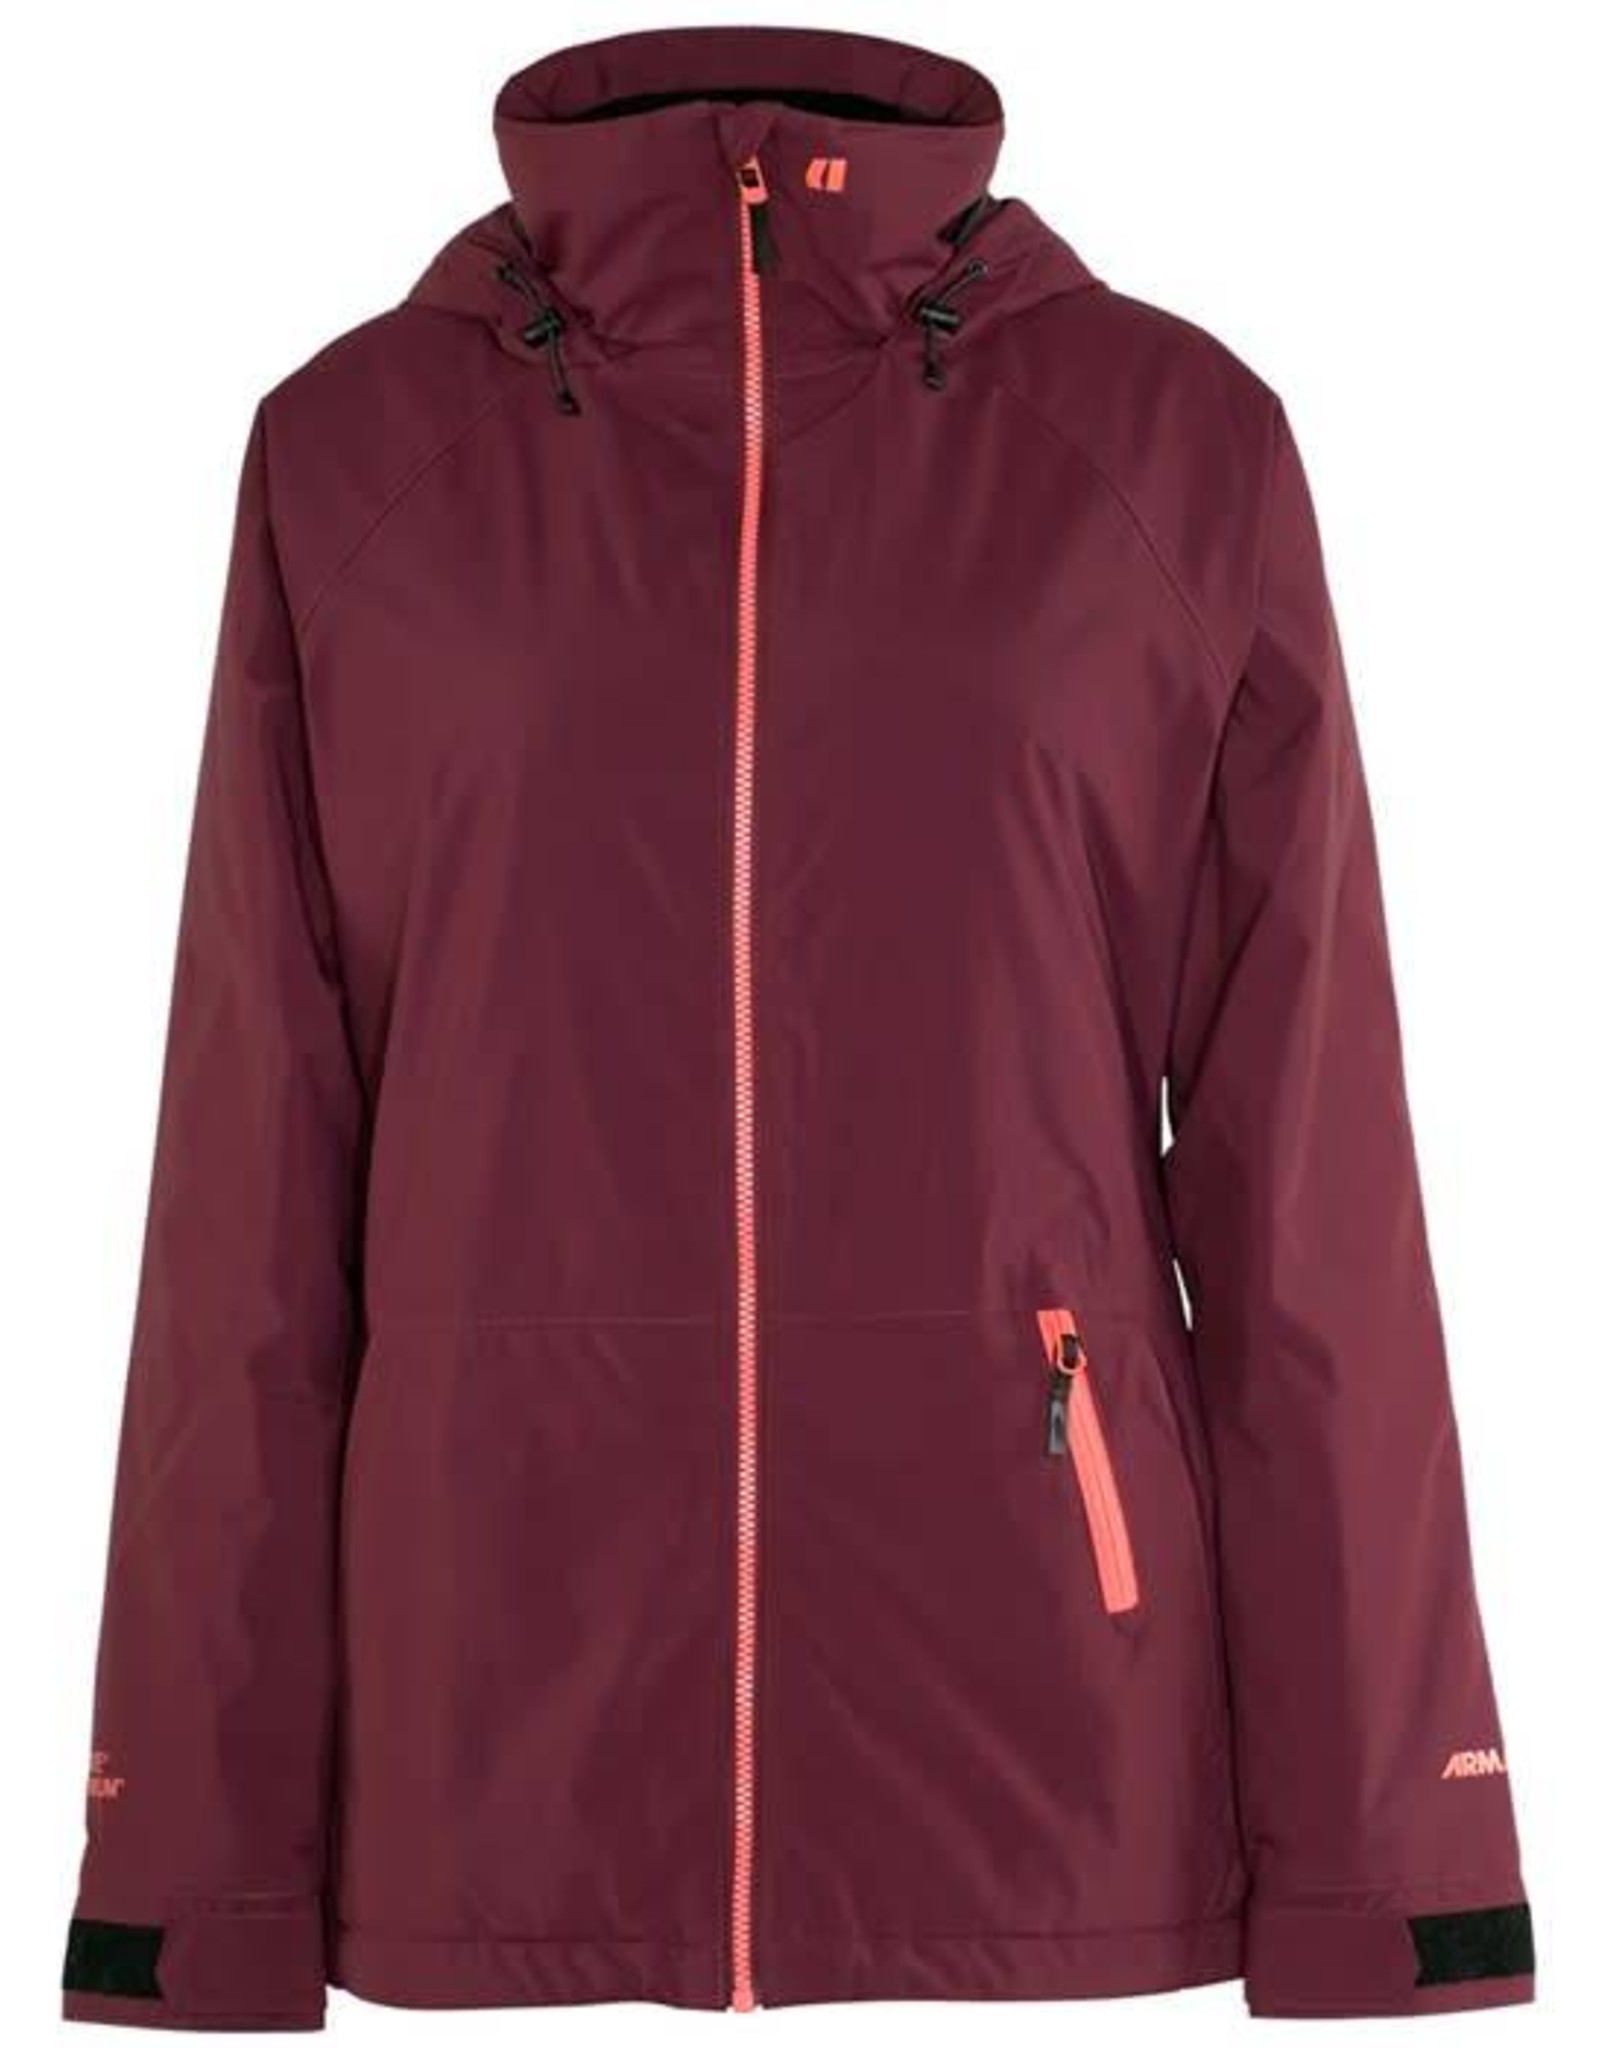 Armada Temple Thermium Insulated Jacket